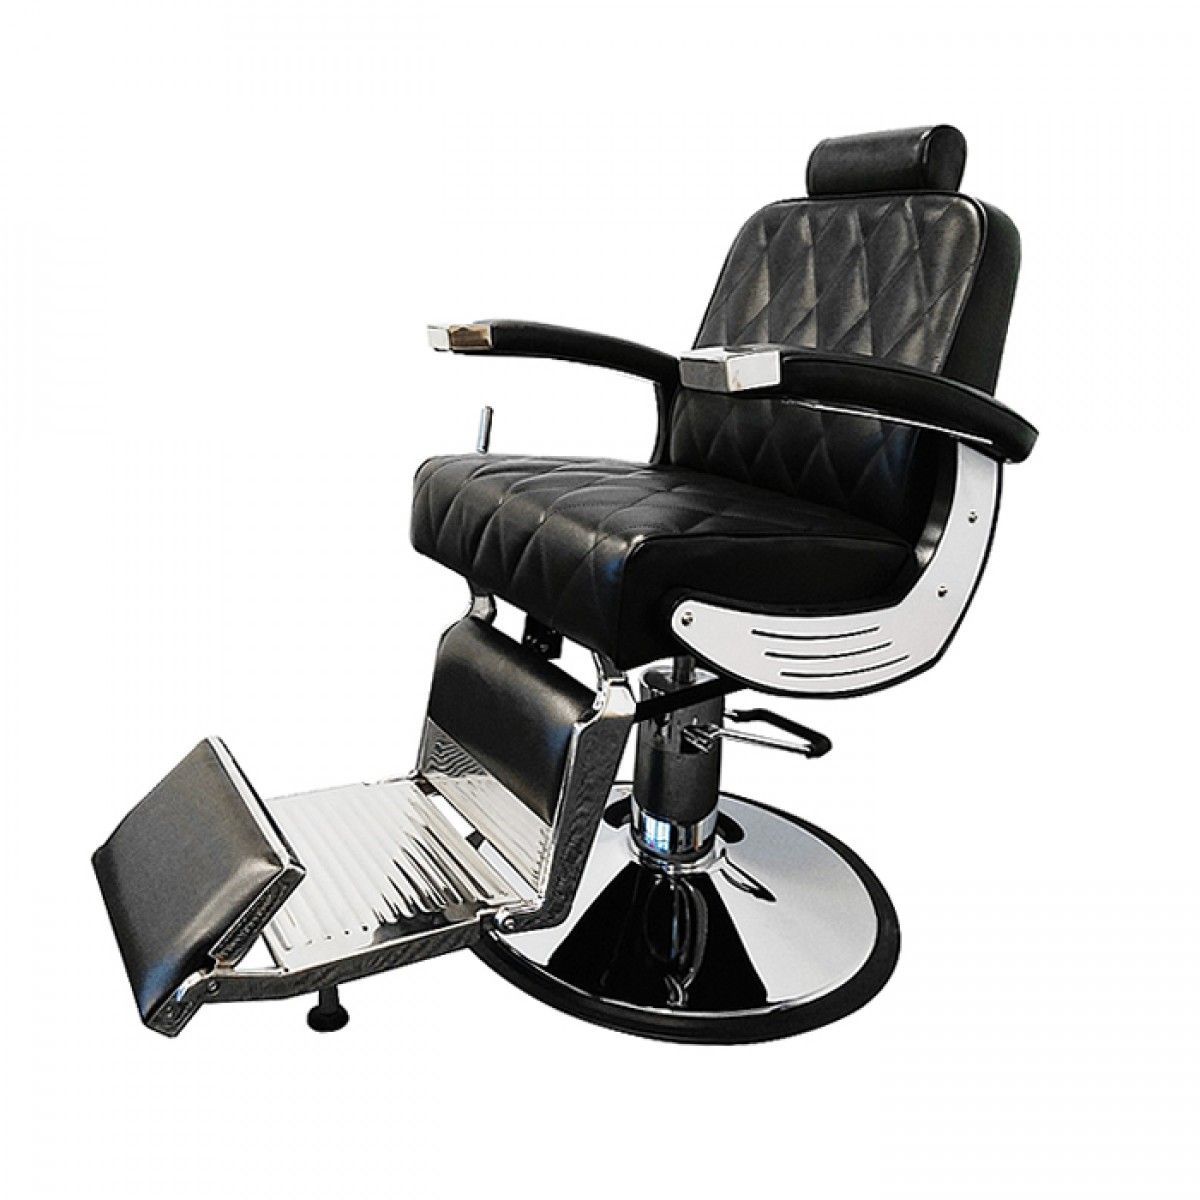 keller barber chair home gym quotbaron quot with heavy duty pump final salon